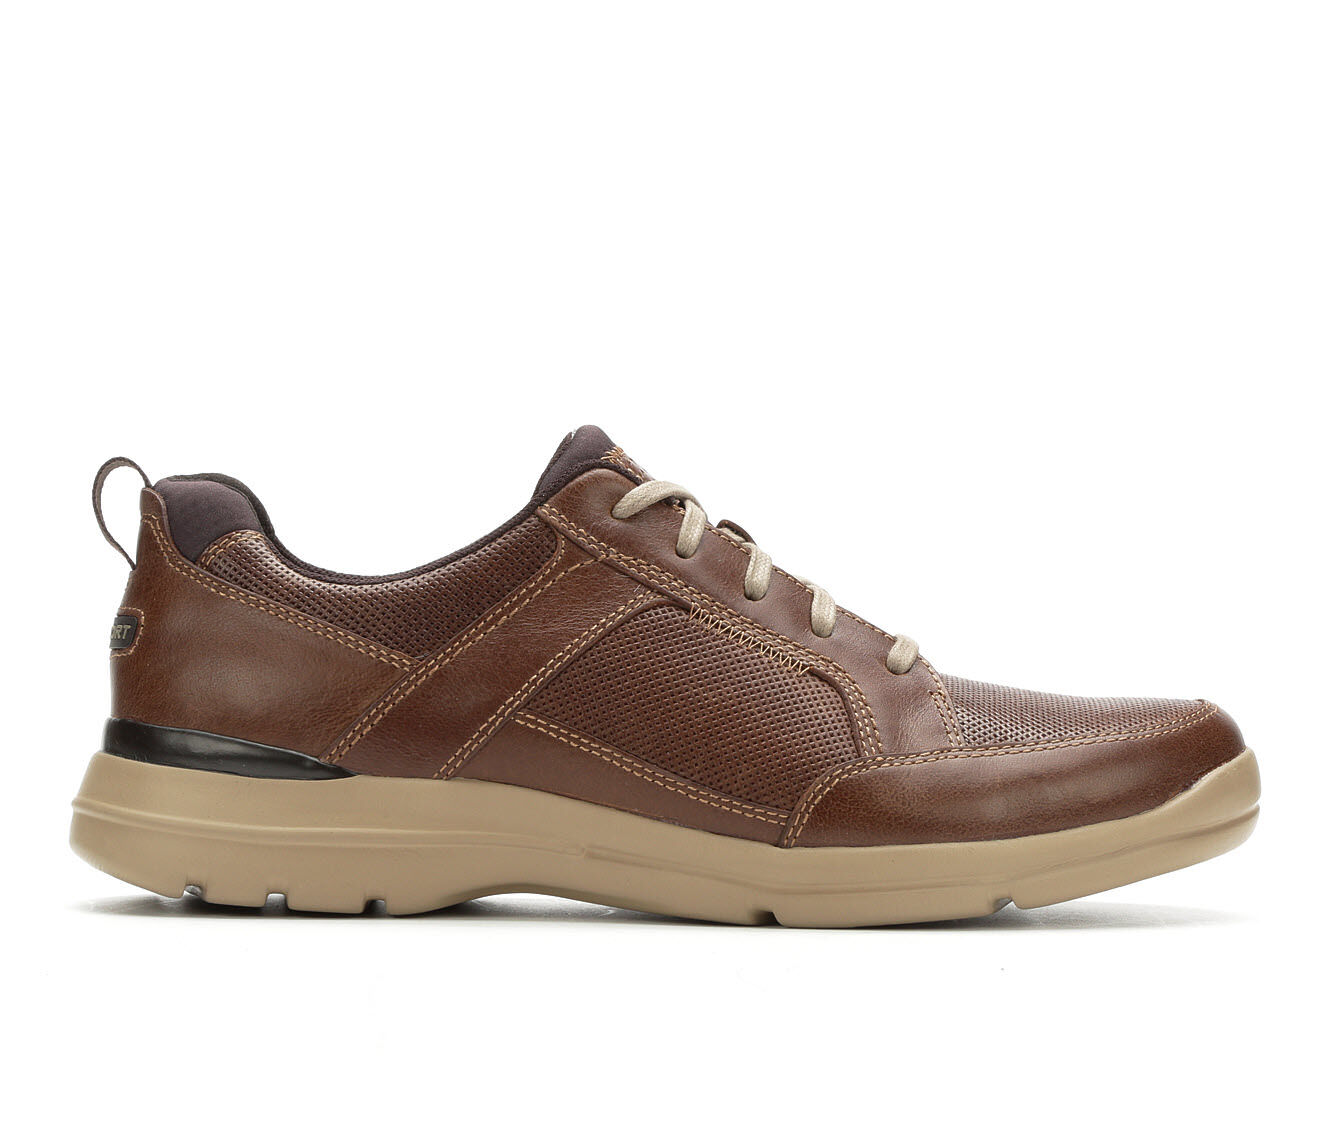 Men's Rockport City Edge Lace-Up Brown